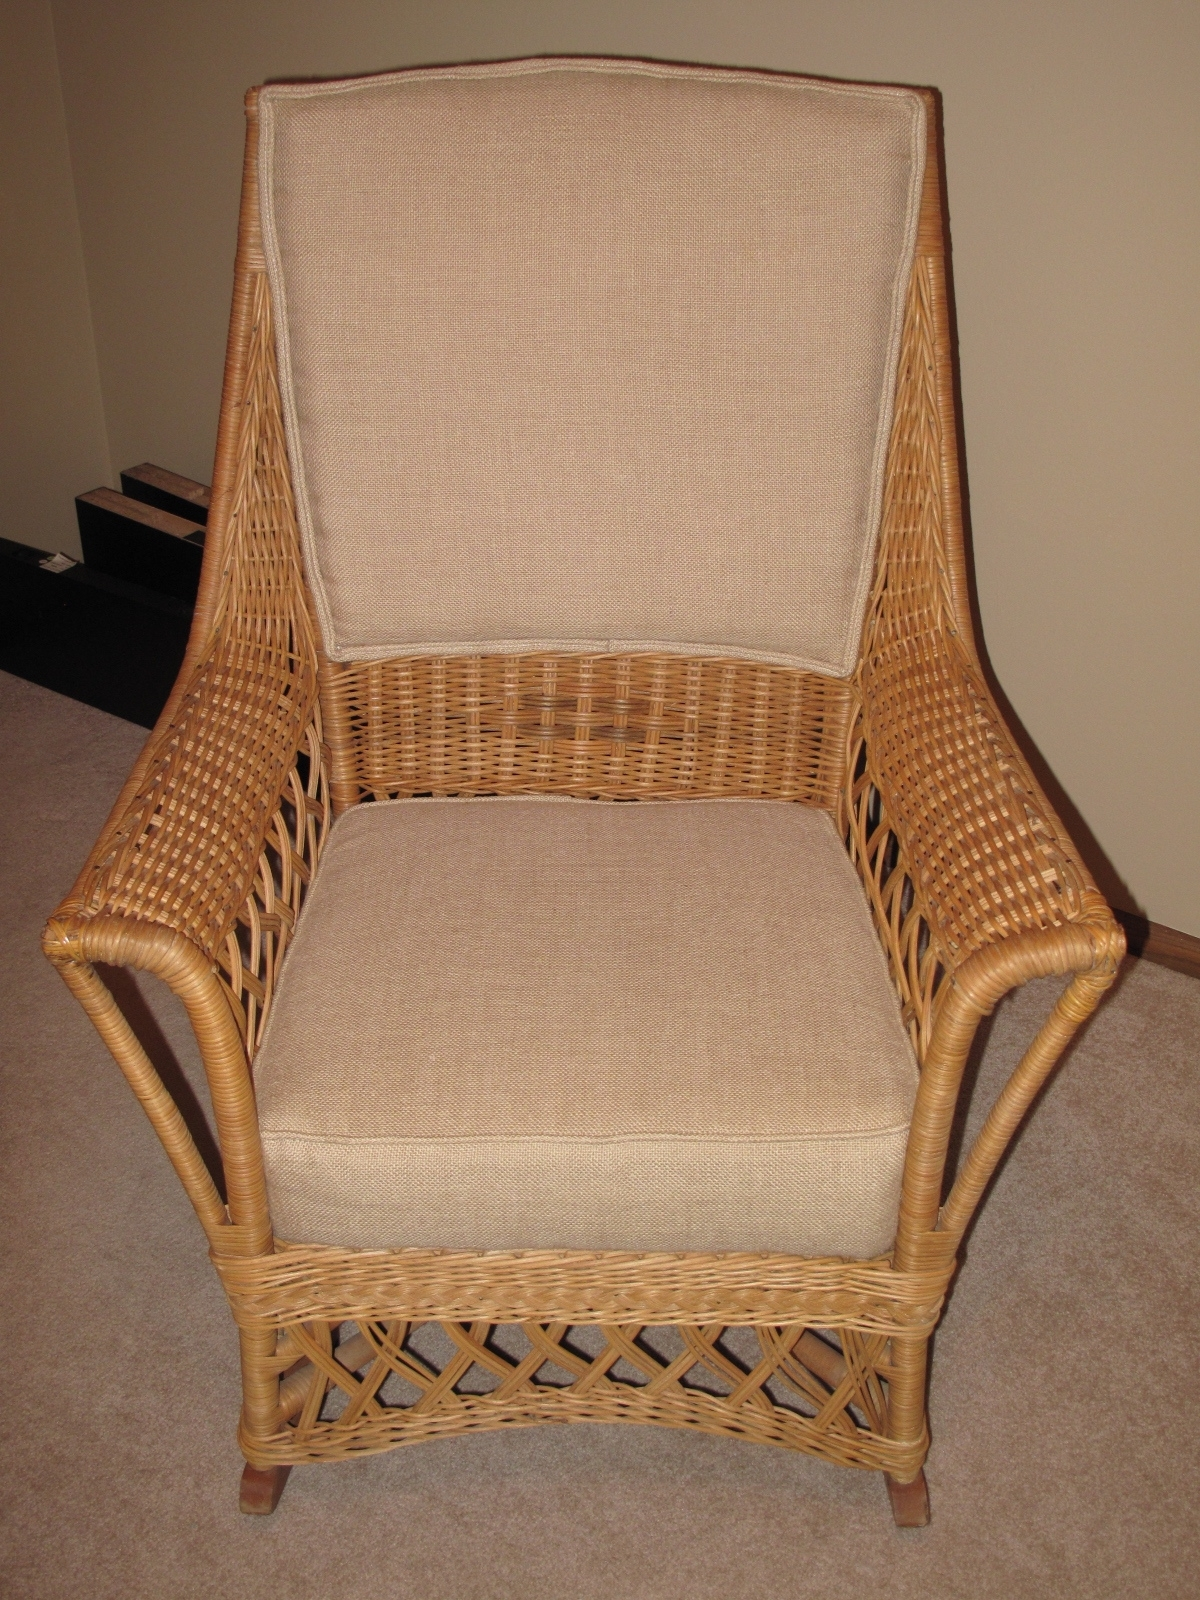 Furniture: Ypsilanti Furniture Company Wicker Rocking Chair Antique Intended For Antique Wicker Rocking Chairs (#10 of 15)